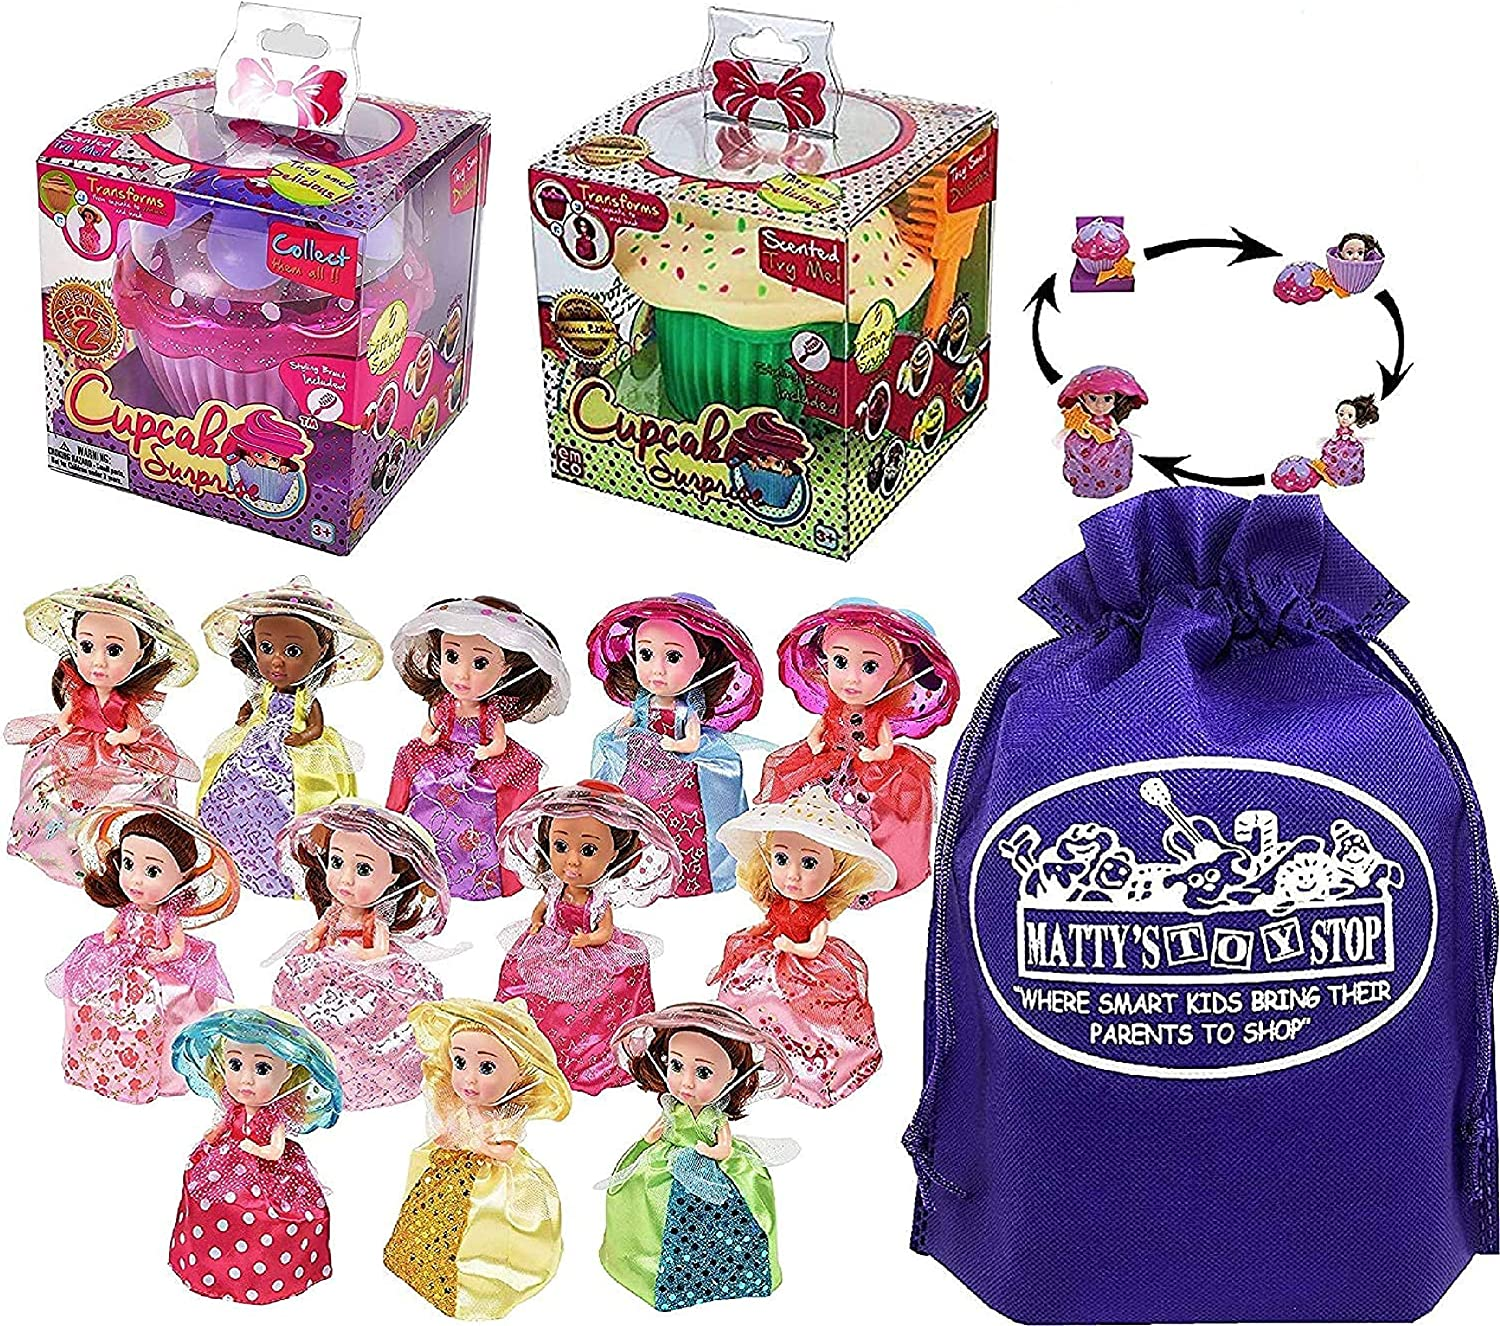 Cupcake Surprise Transforming Scented Princess Dolls Gift Set Bundle with Bonus Matty's Toy Stop Storage Bag - 2 Pack (Colors & Styles are Assorted & May Vary)